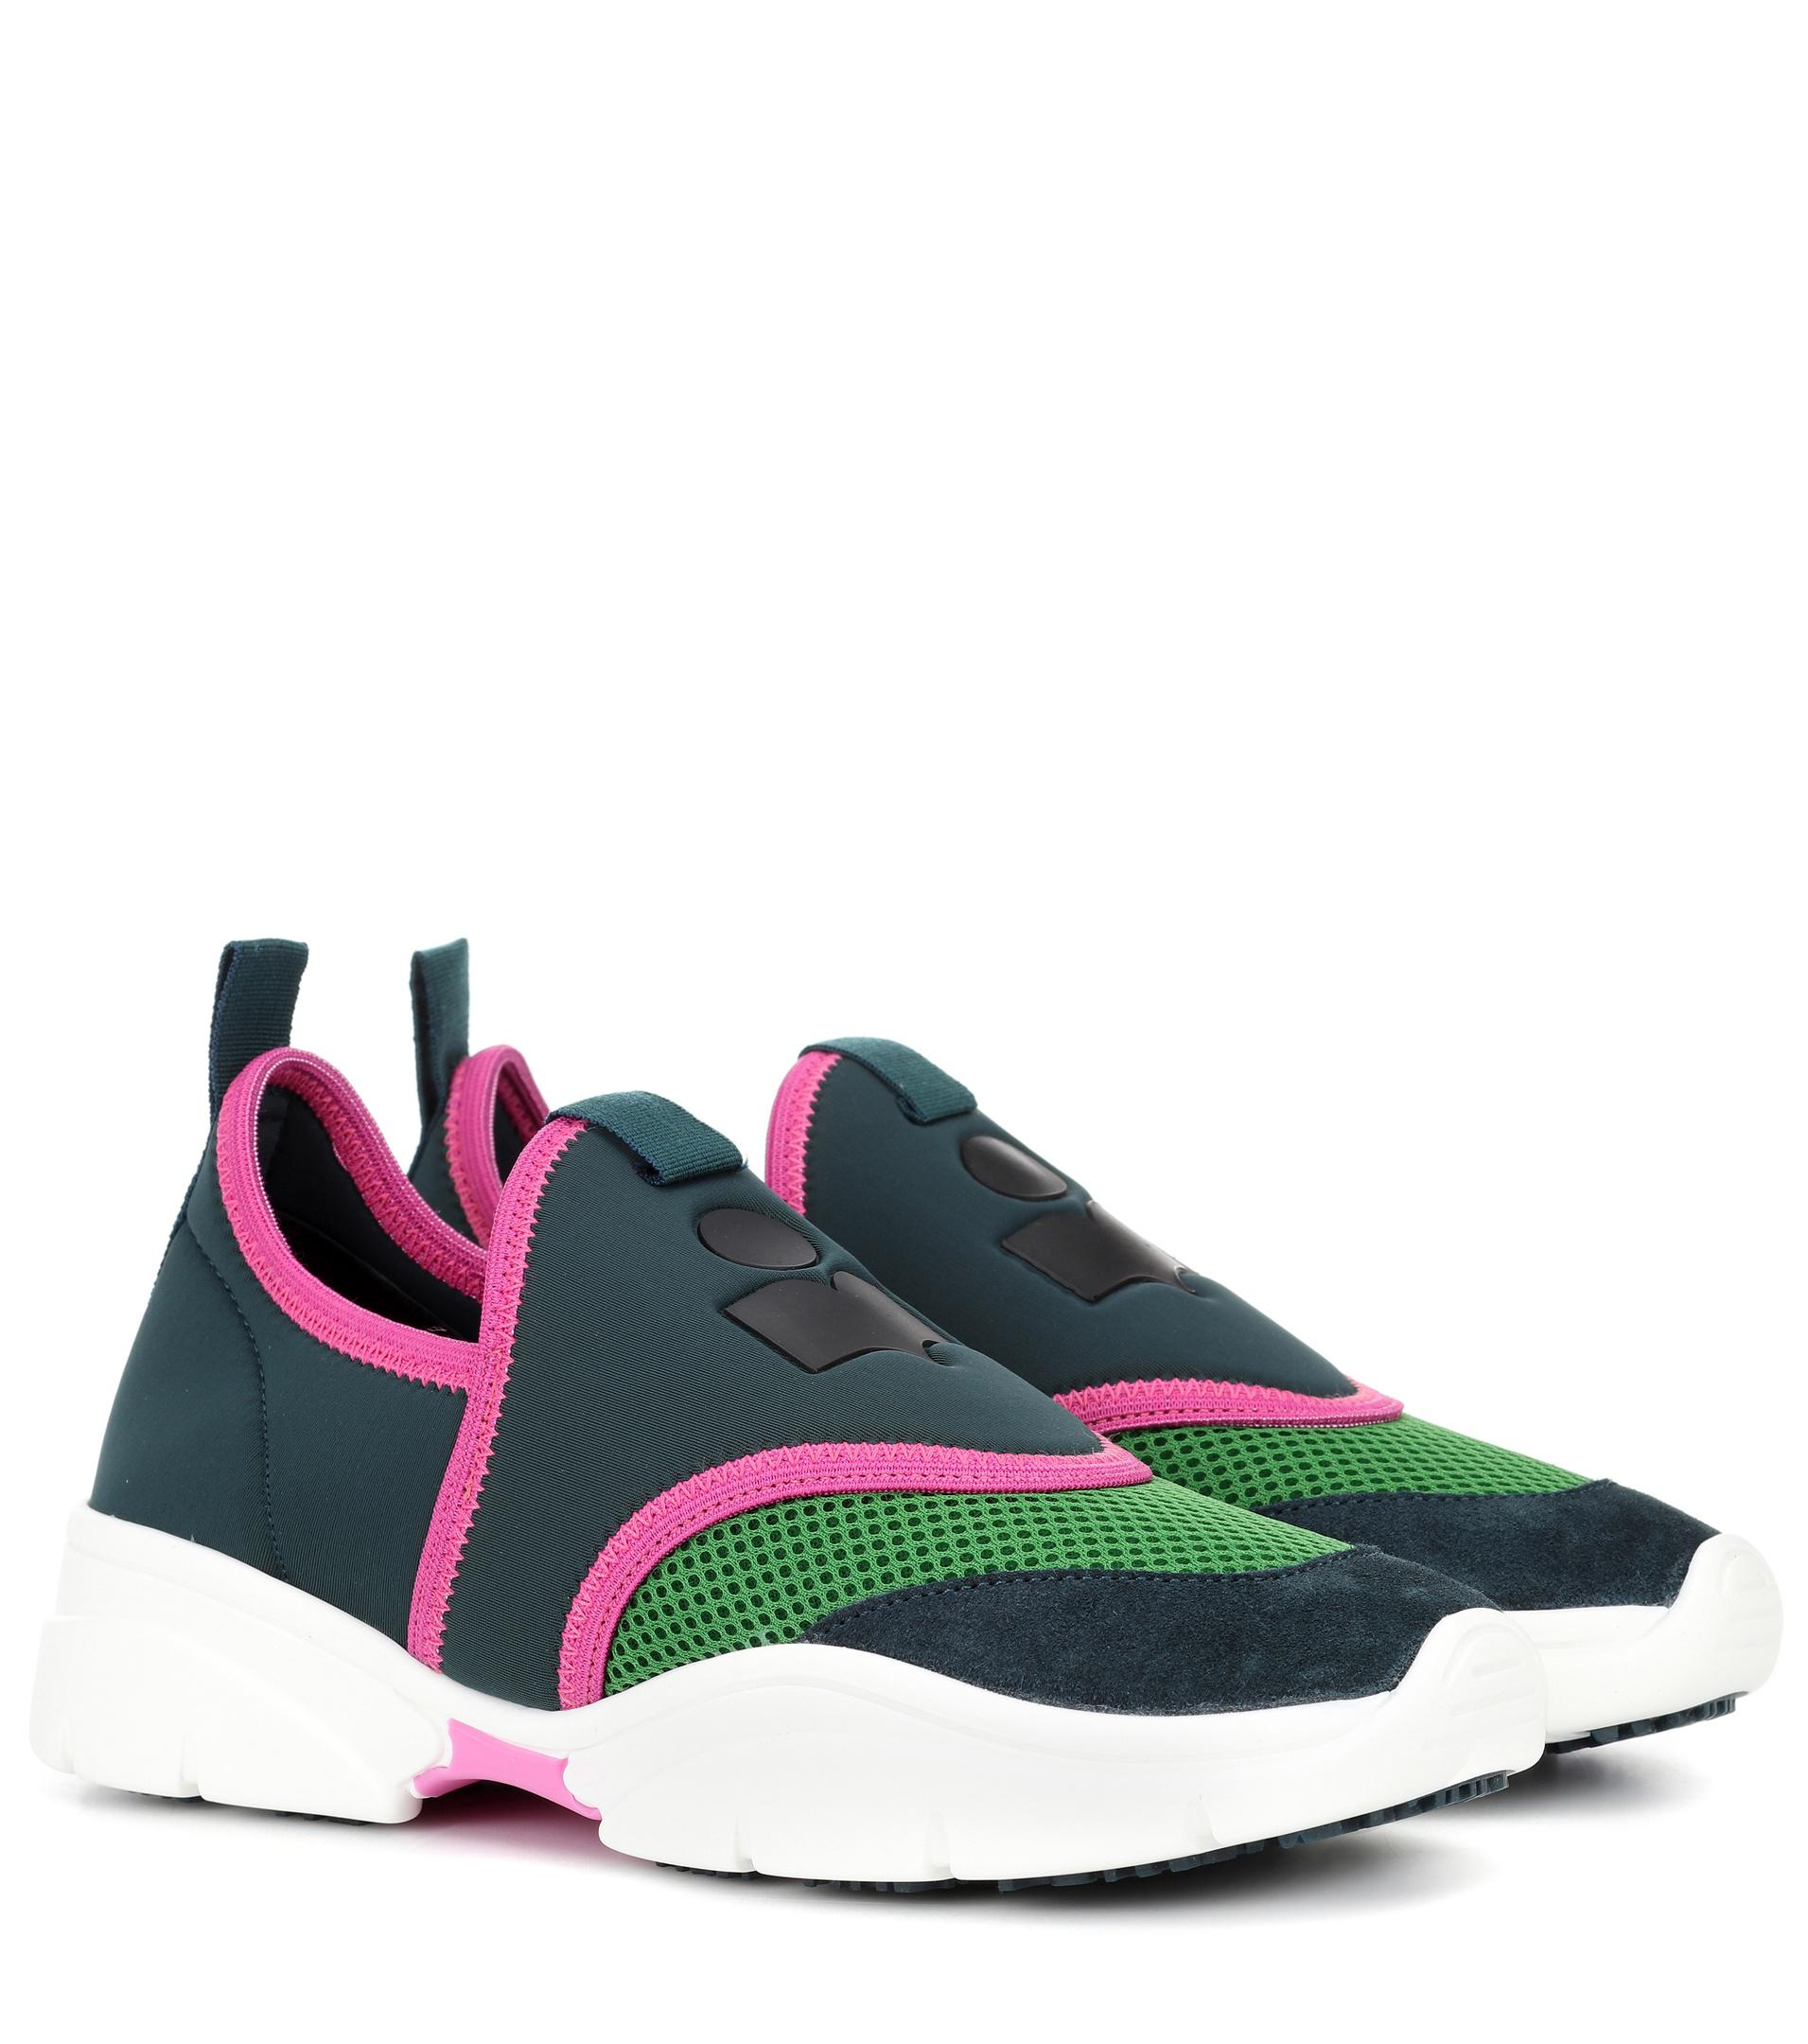 buy cheap manchester great sale classic cheap online Isabel Marant Kaisee scuba sneakers best outlet the cheapest L3FGoWOG04